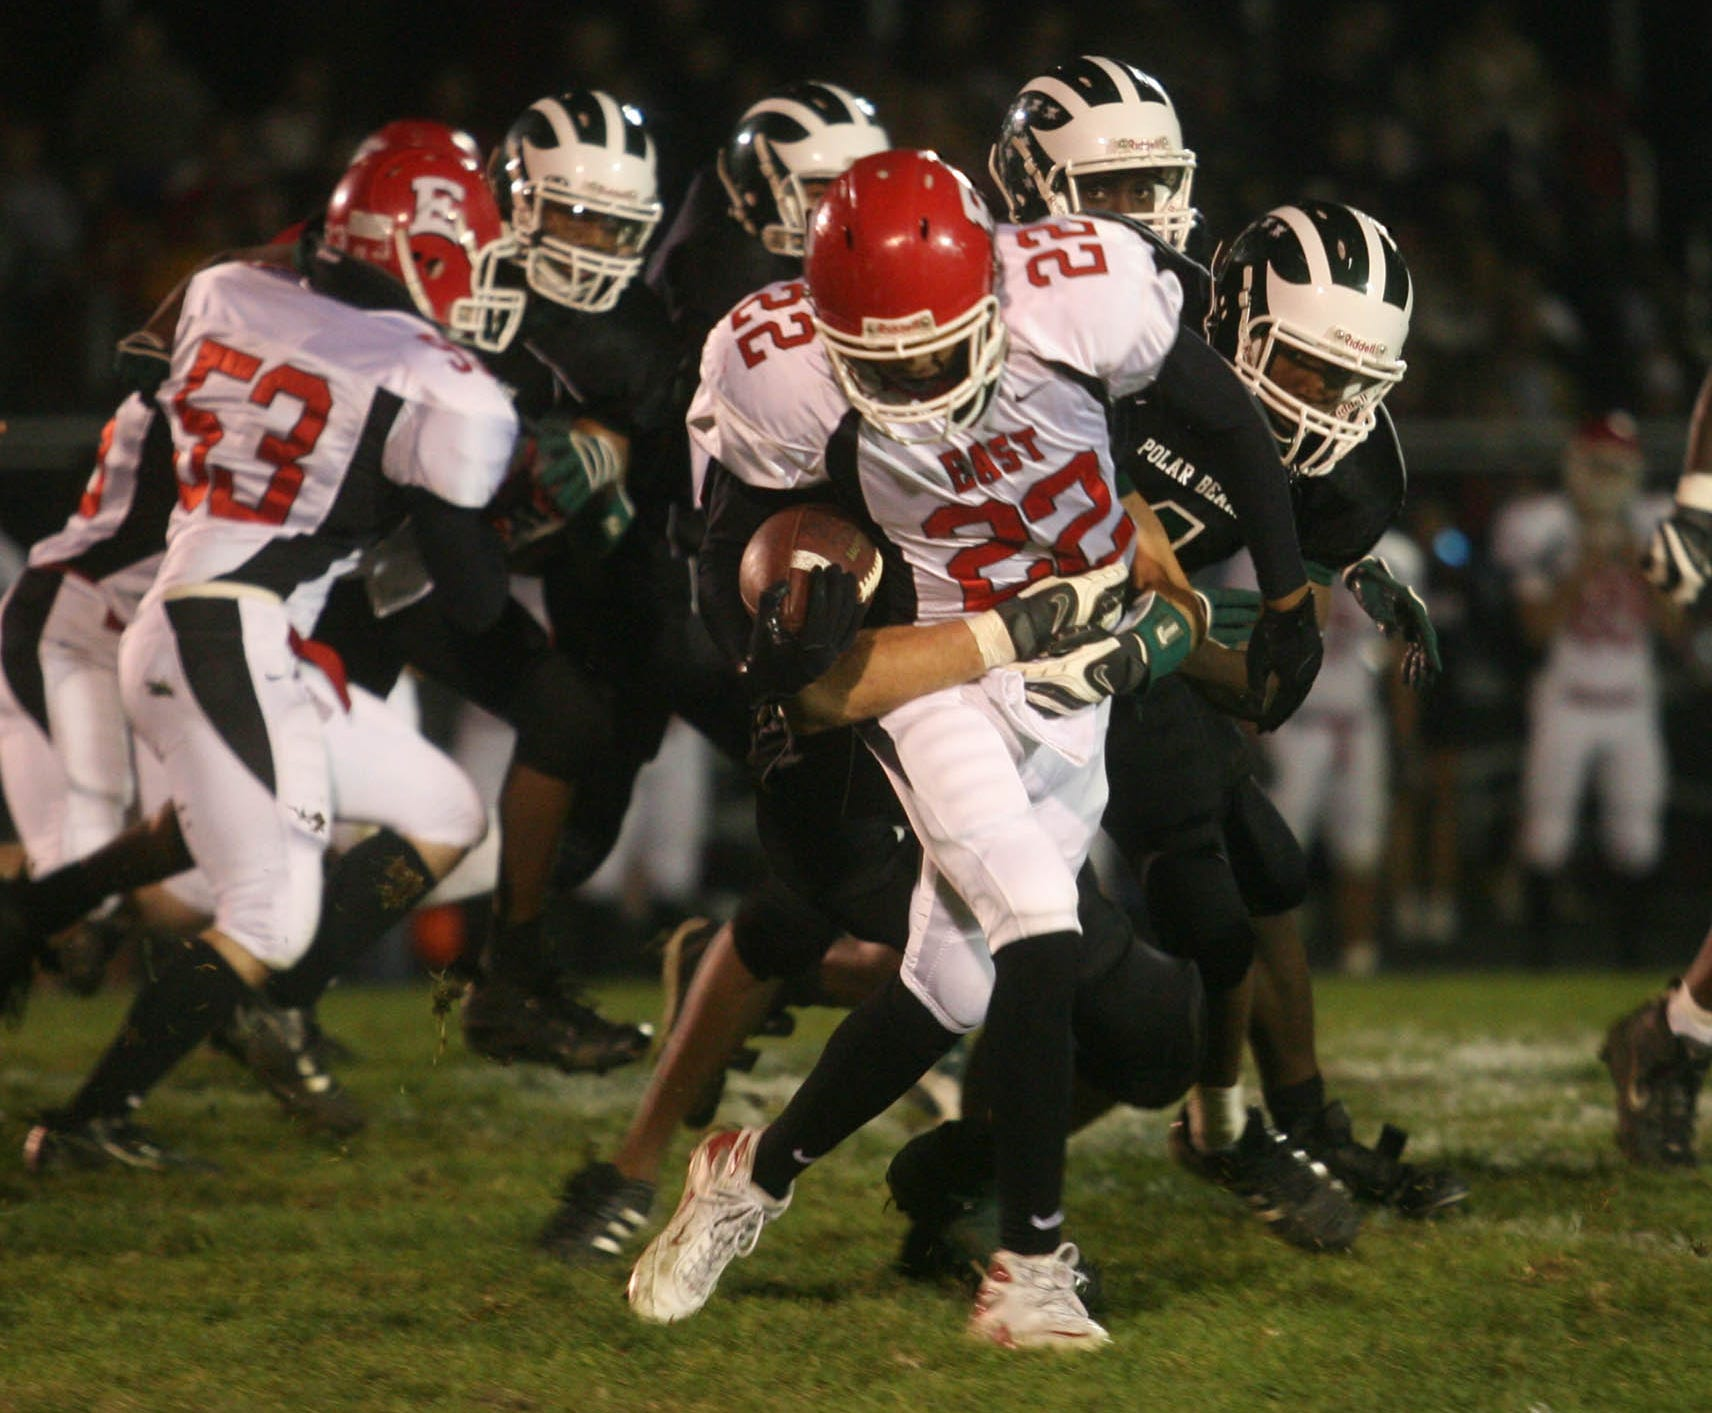 East's Juan Rincon (22) looks to break away from a North defender during the Des Moines rivalry game in 2007 at North High School.